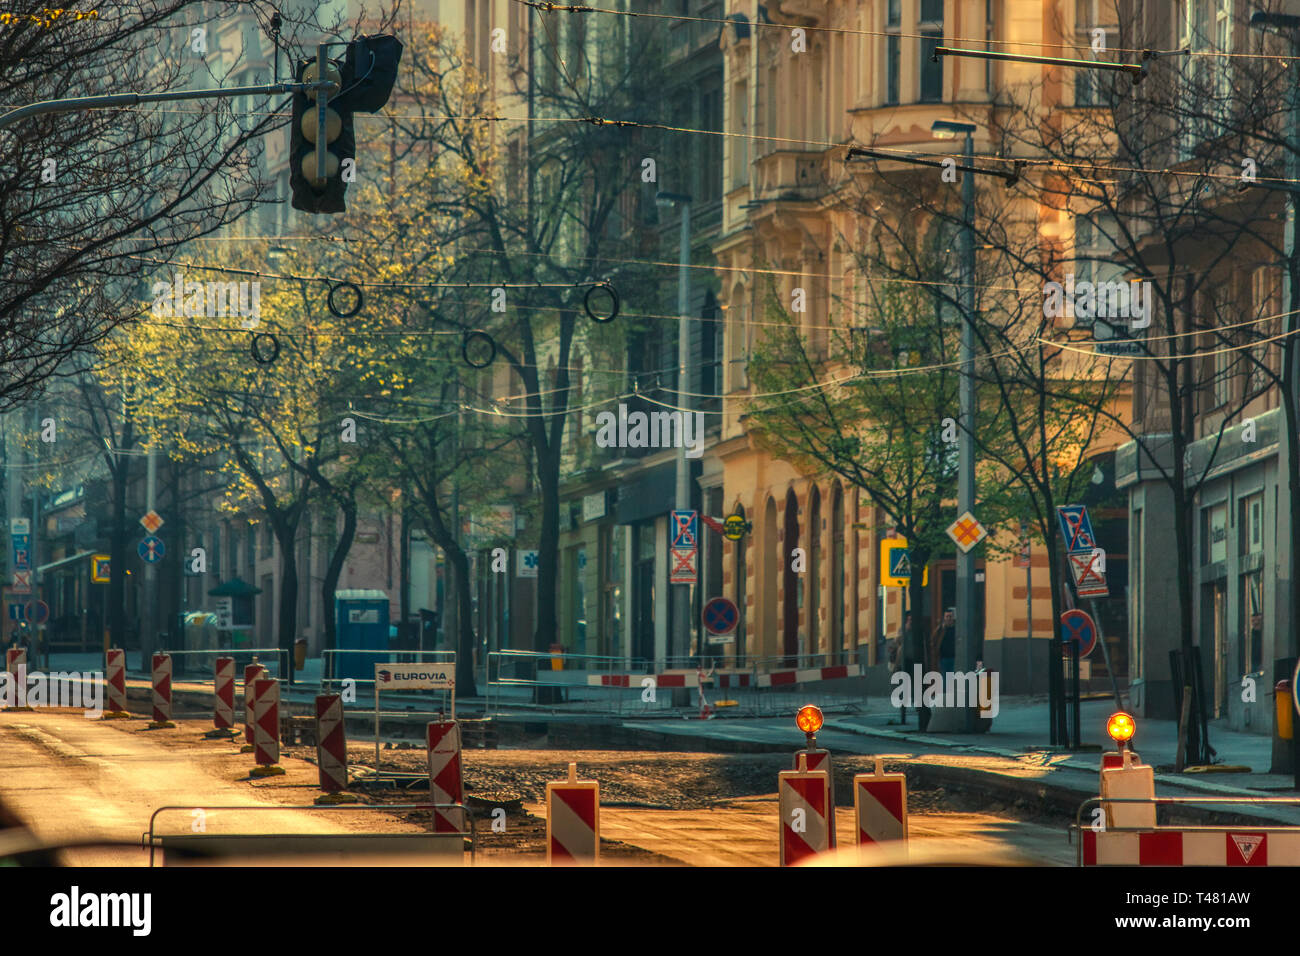 sunsstreet under reconstruction early in the morning sunshine - Stock Image